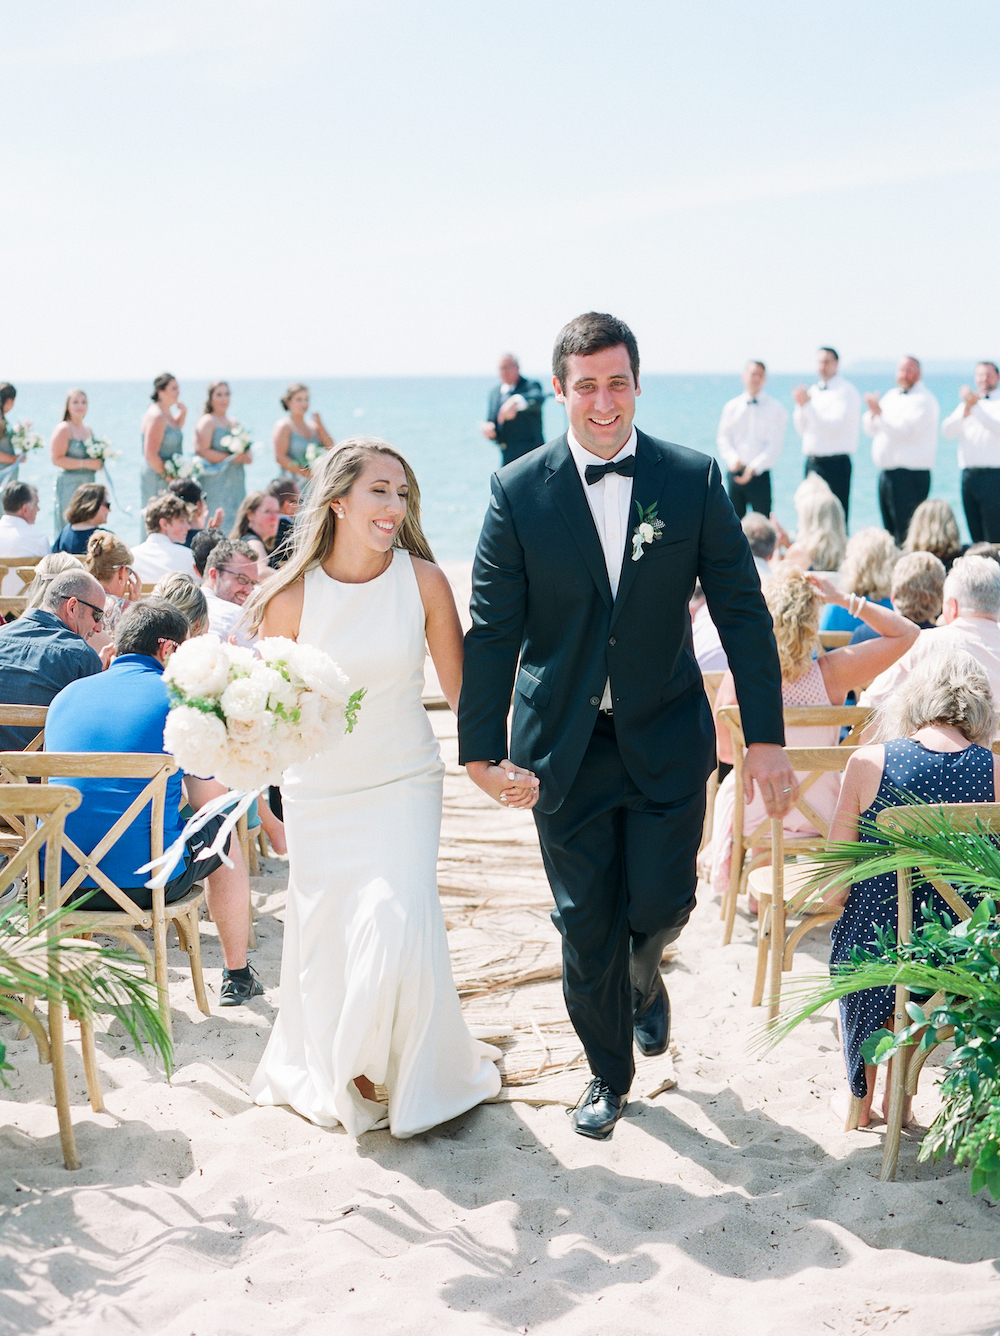 A couple smiling after their Glen Arbor, Michigan wedding